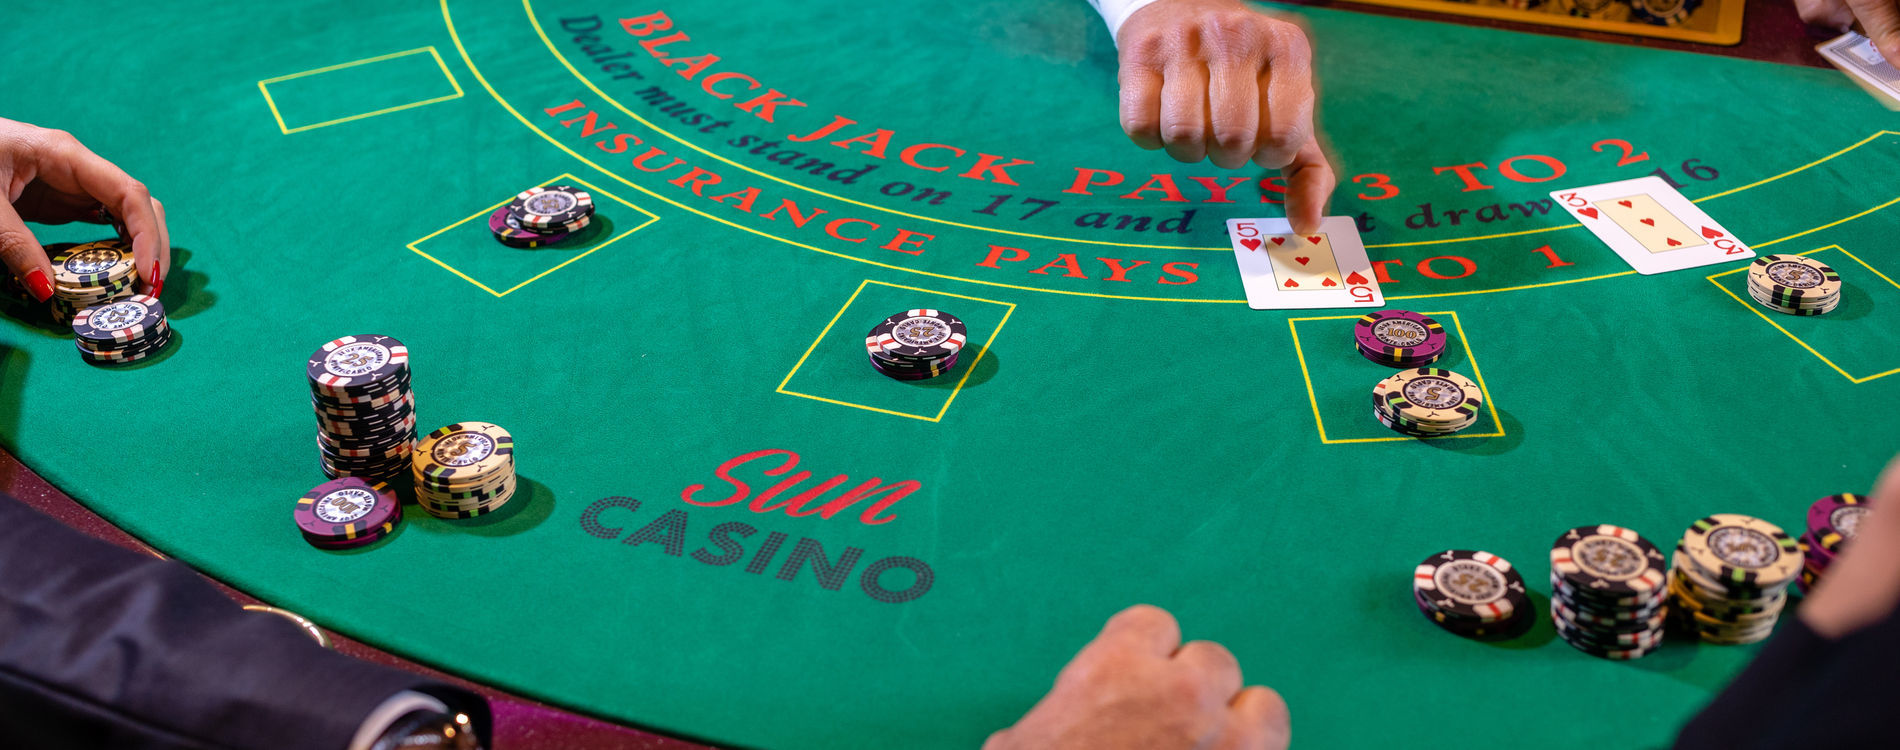 Stay away from this when playing online casino gambling